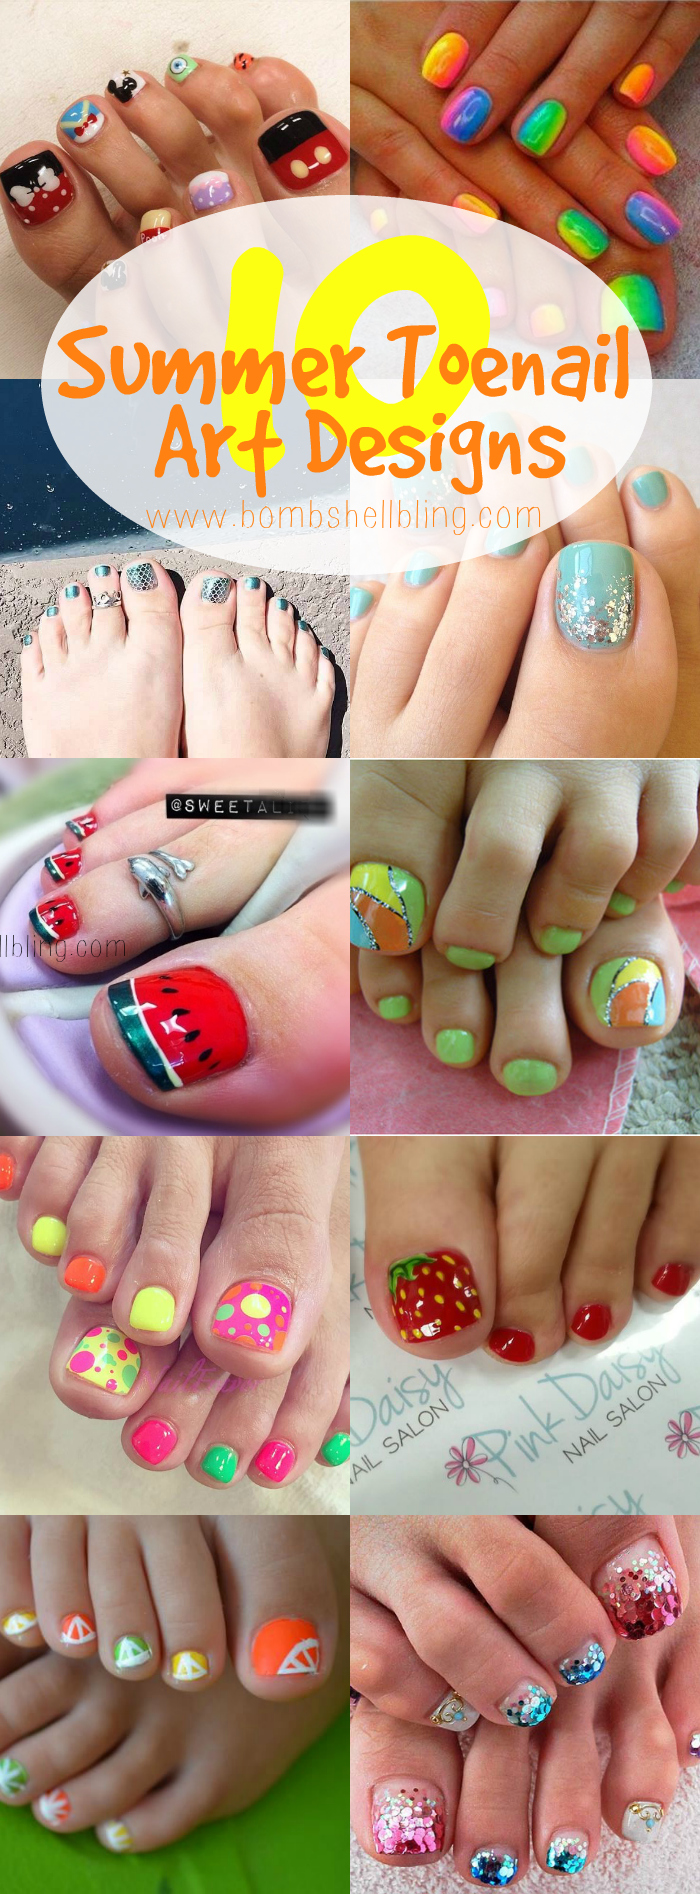 10 Summer Toenail Art Designs